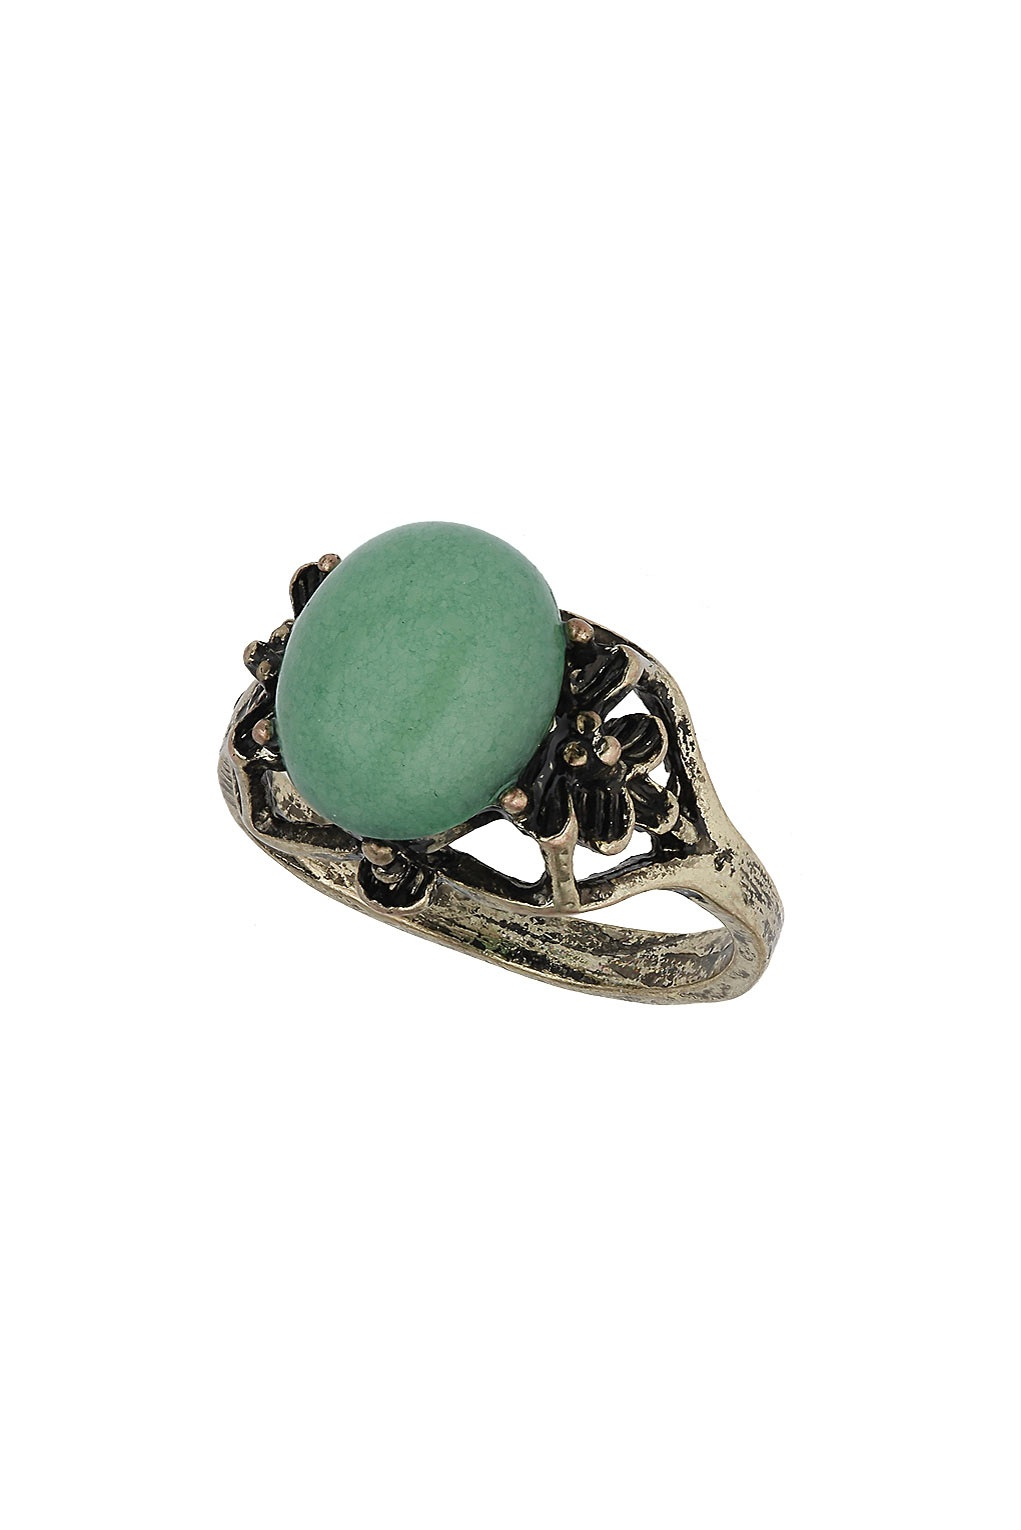 Green Stone Ring From Topshop £6.50